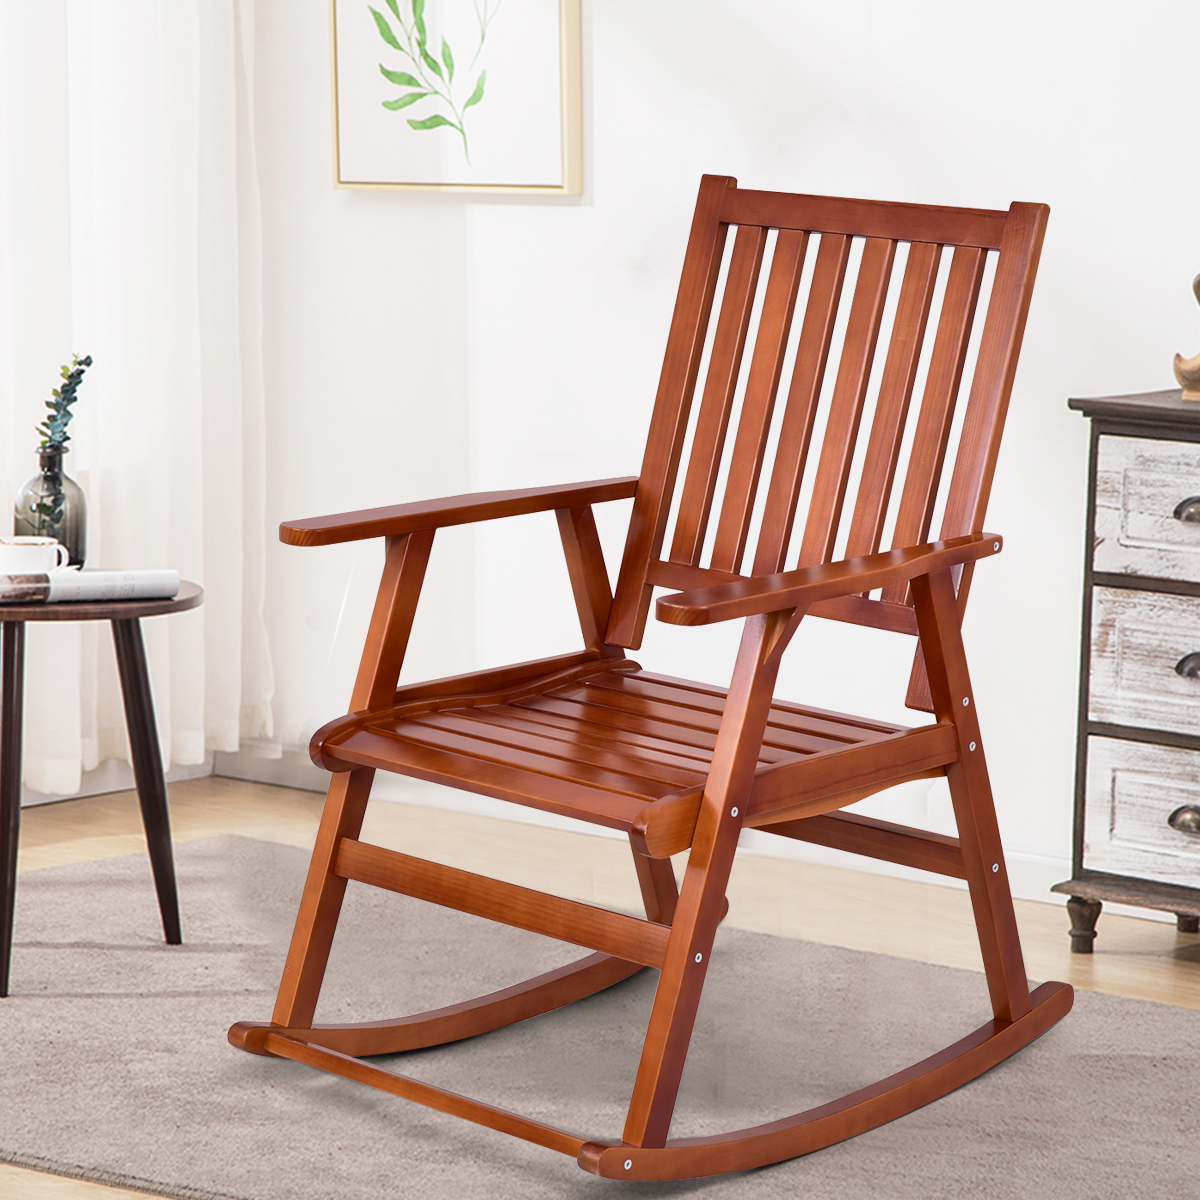 Costway Wood Rocking Chair Single Porch Rocker Indoor Outdoor Patio Furniture Natural